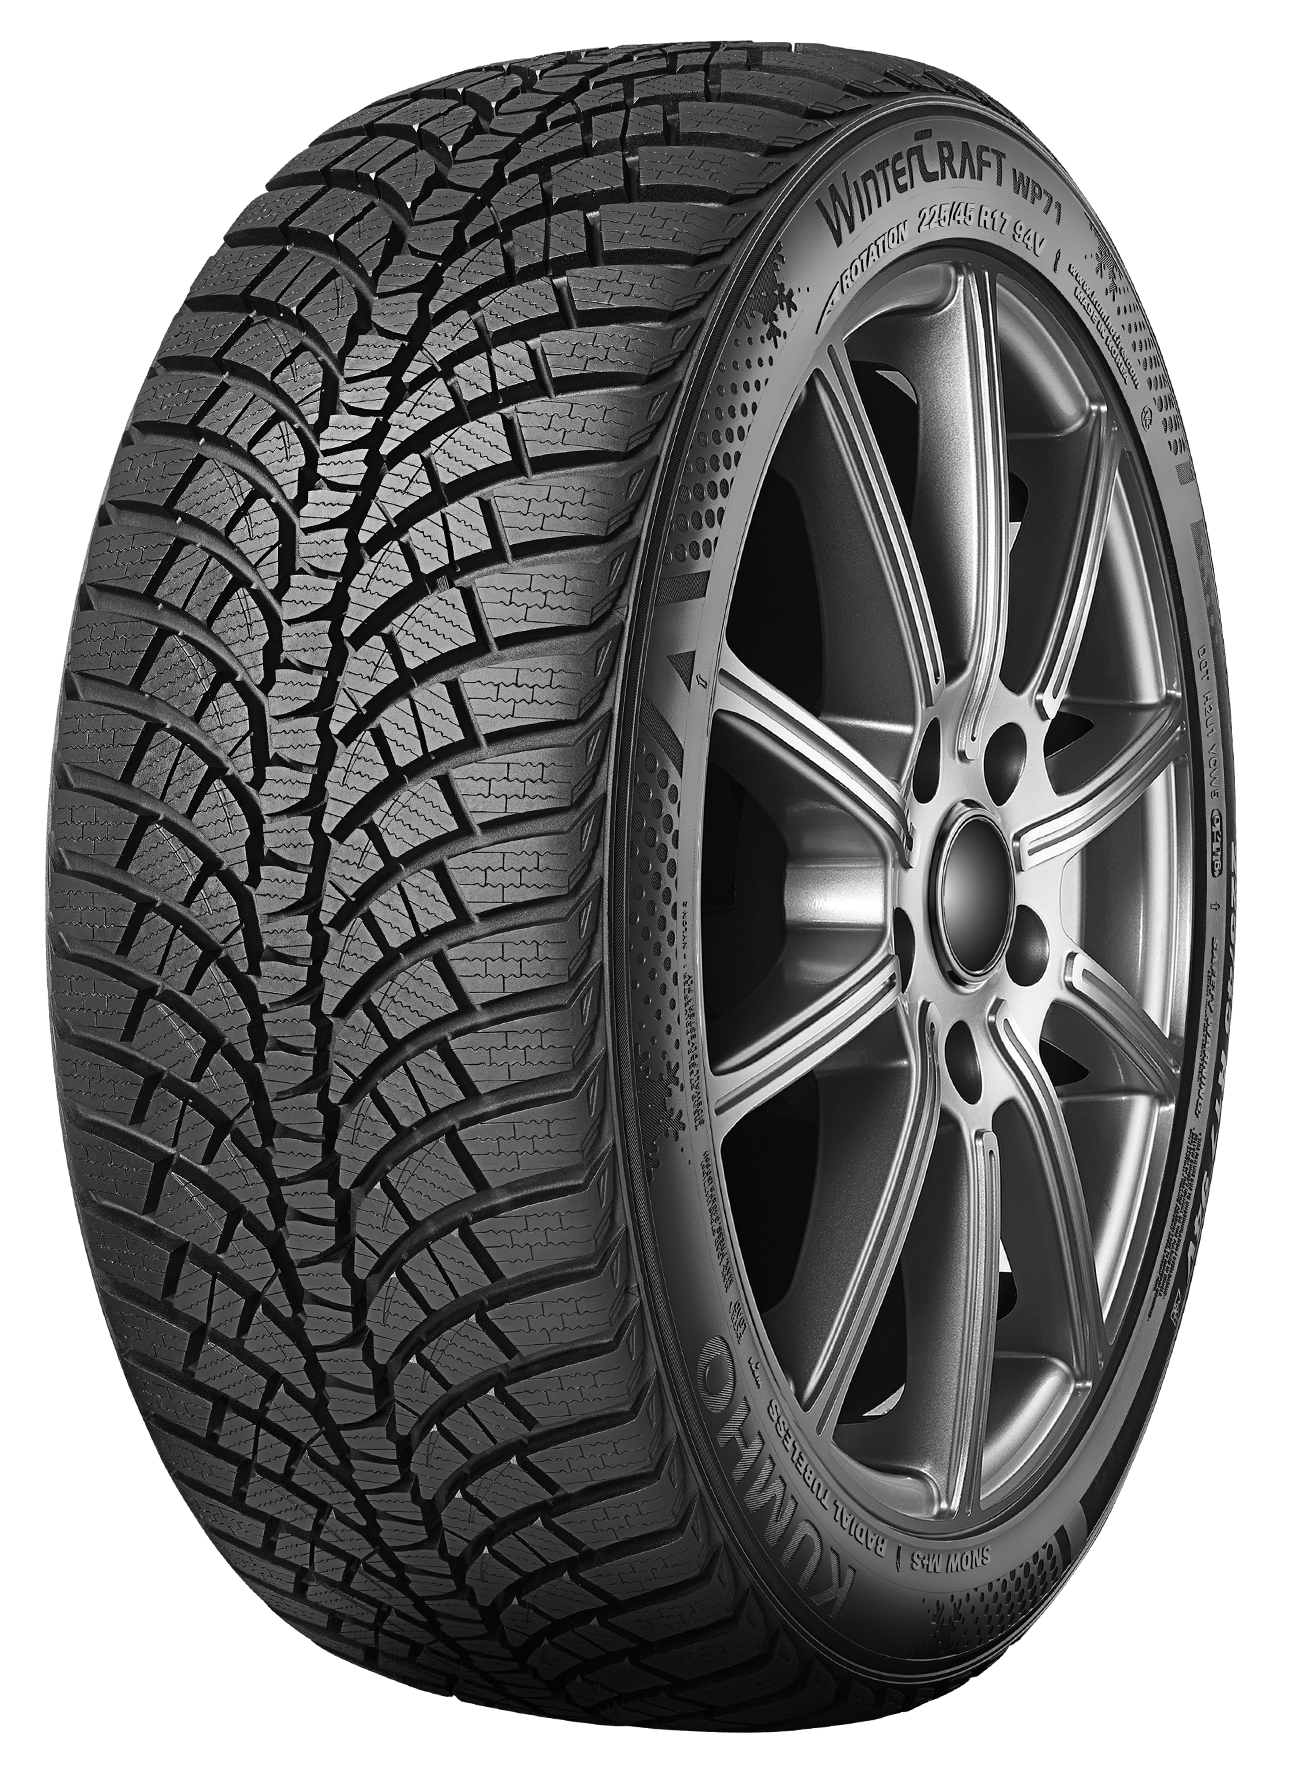 wintercraft kumho tire canada inc #19388